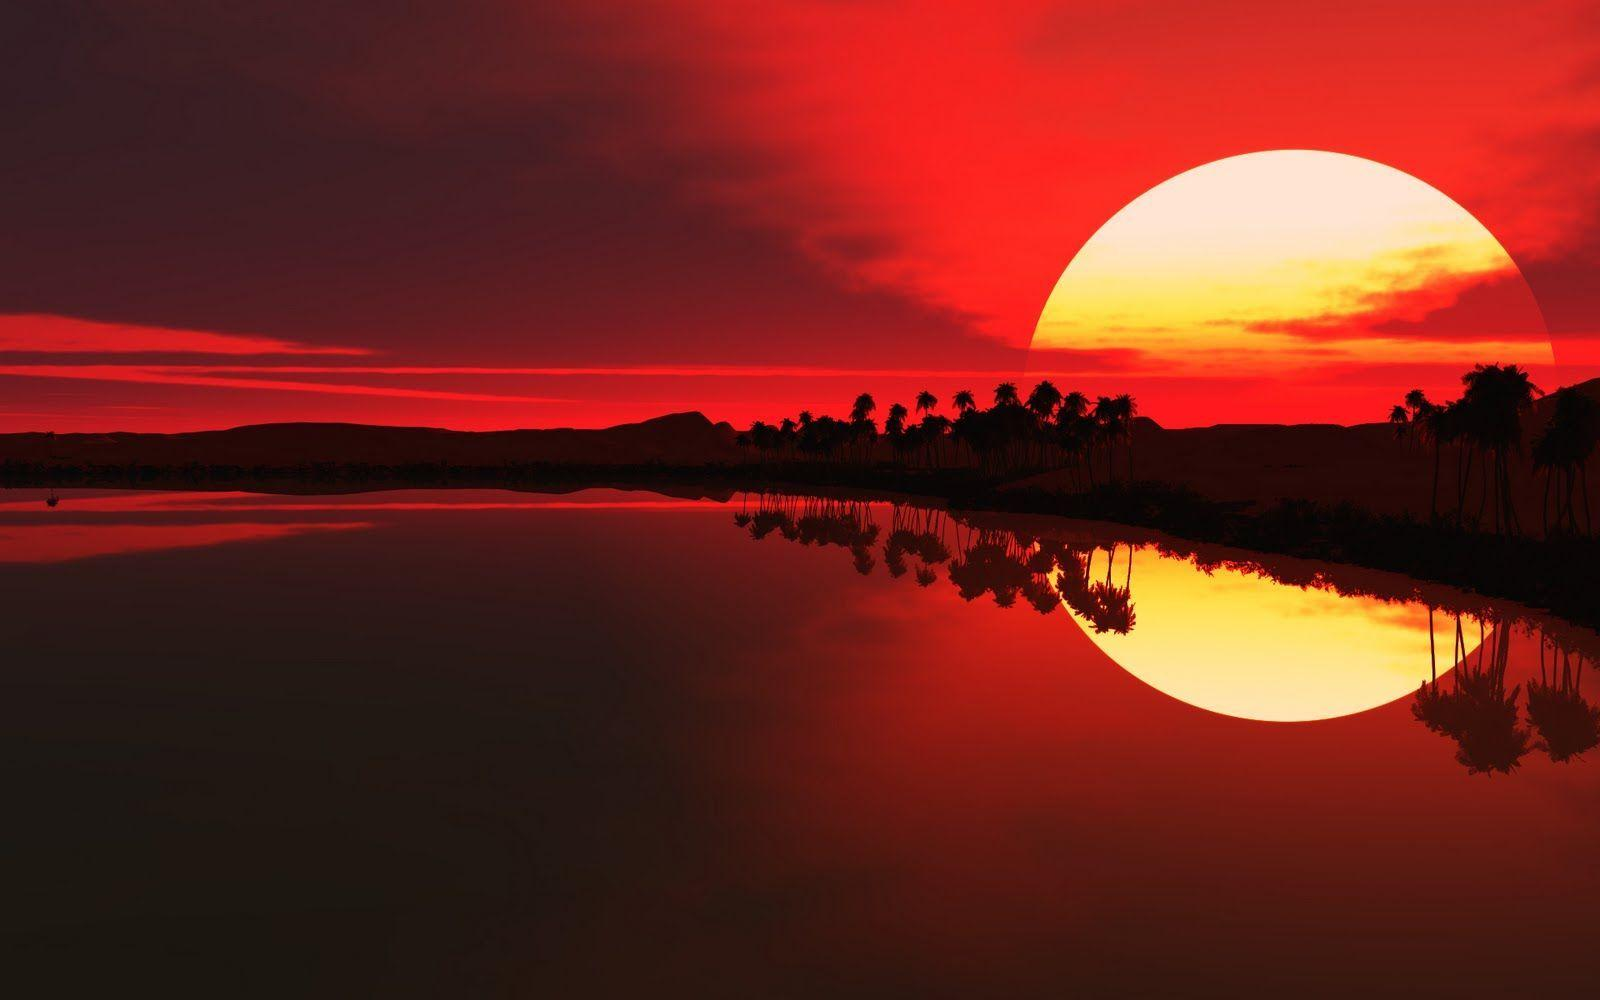 sunset-wallpapers-free_download - Dhoomwallpaper.com | Latest HD ...